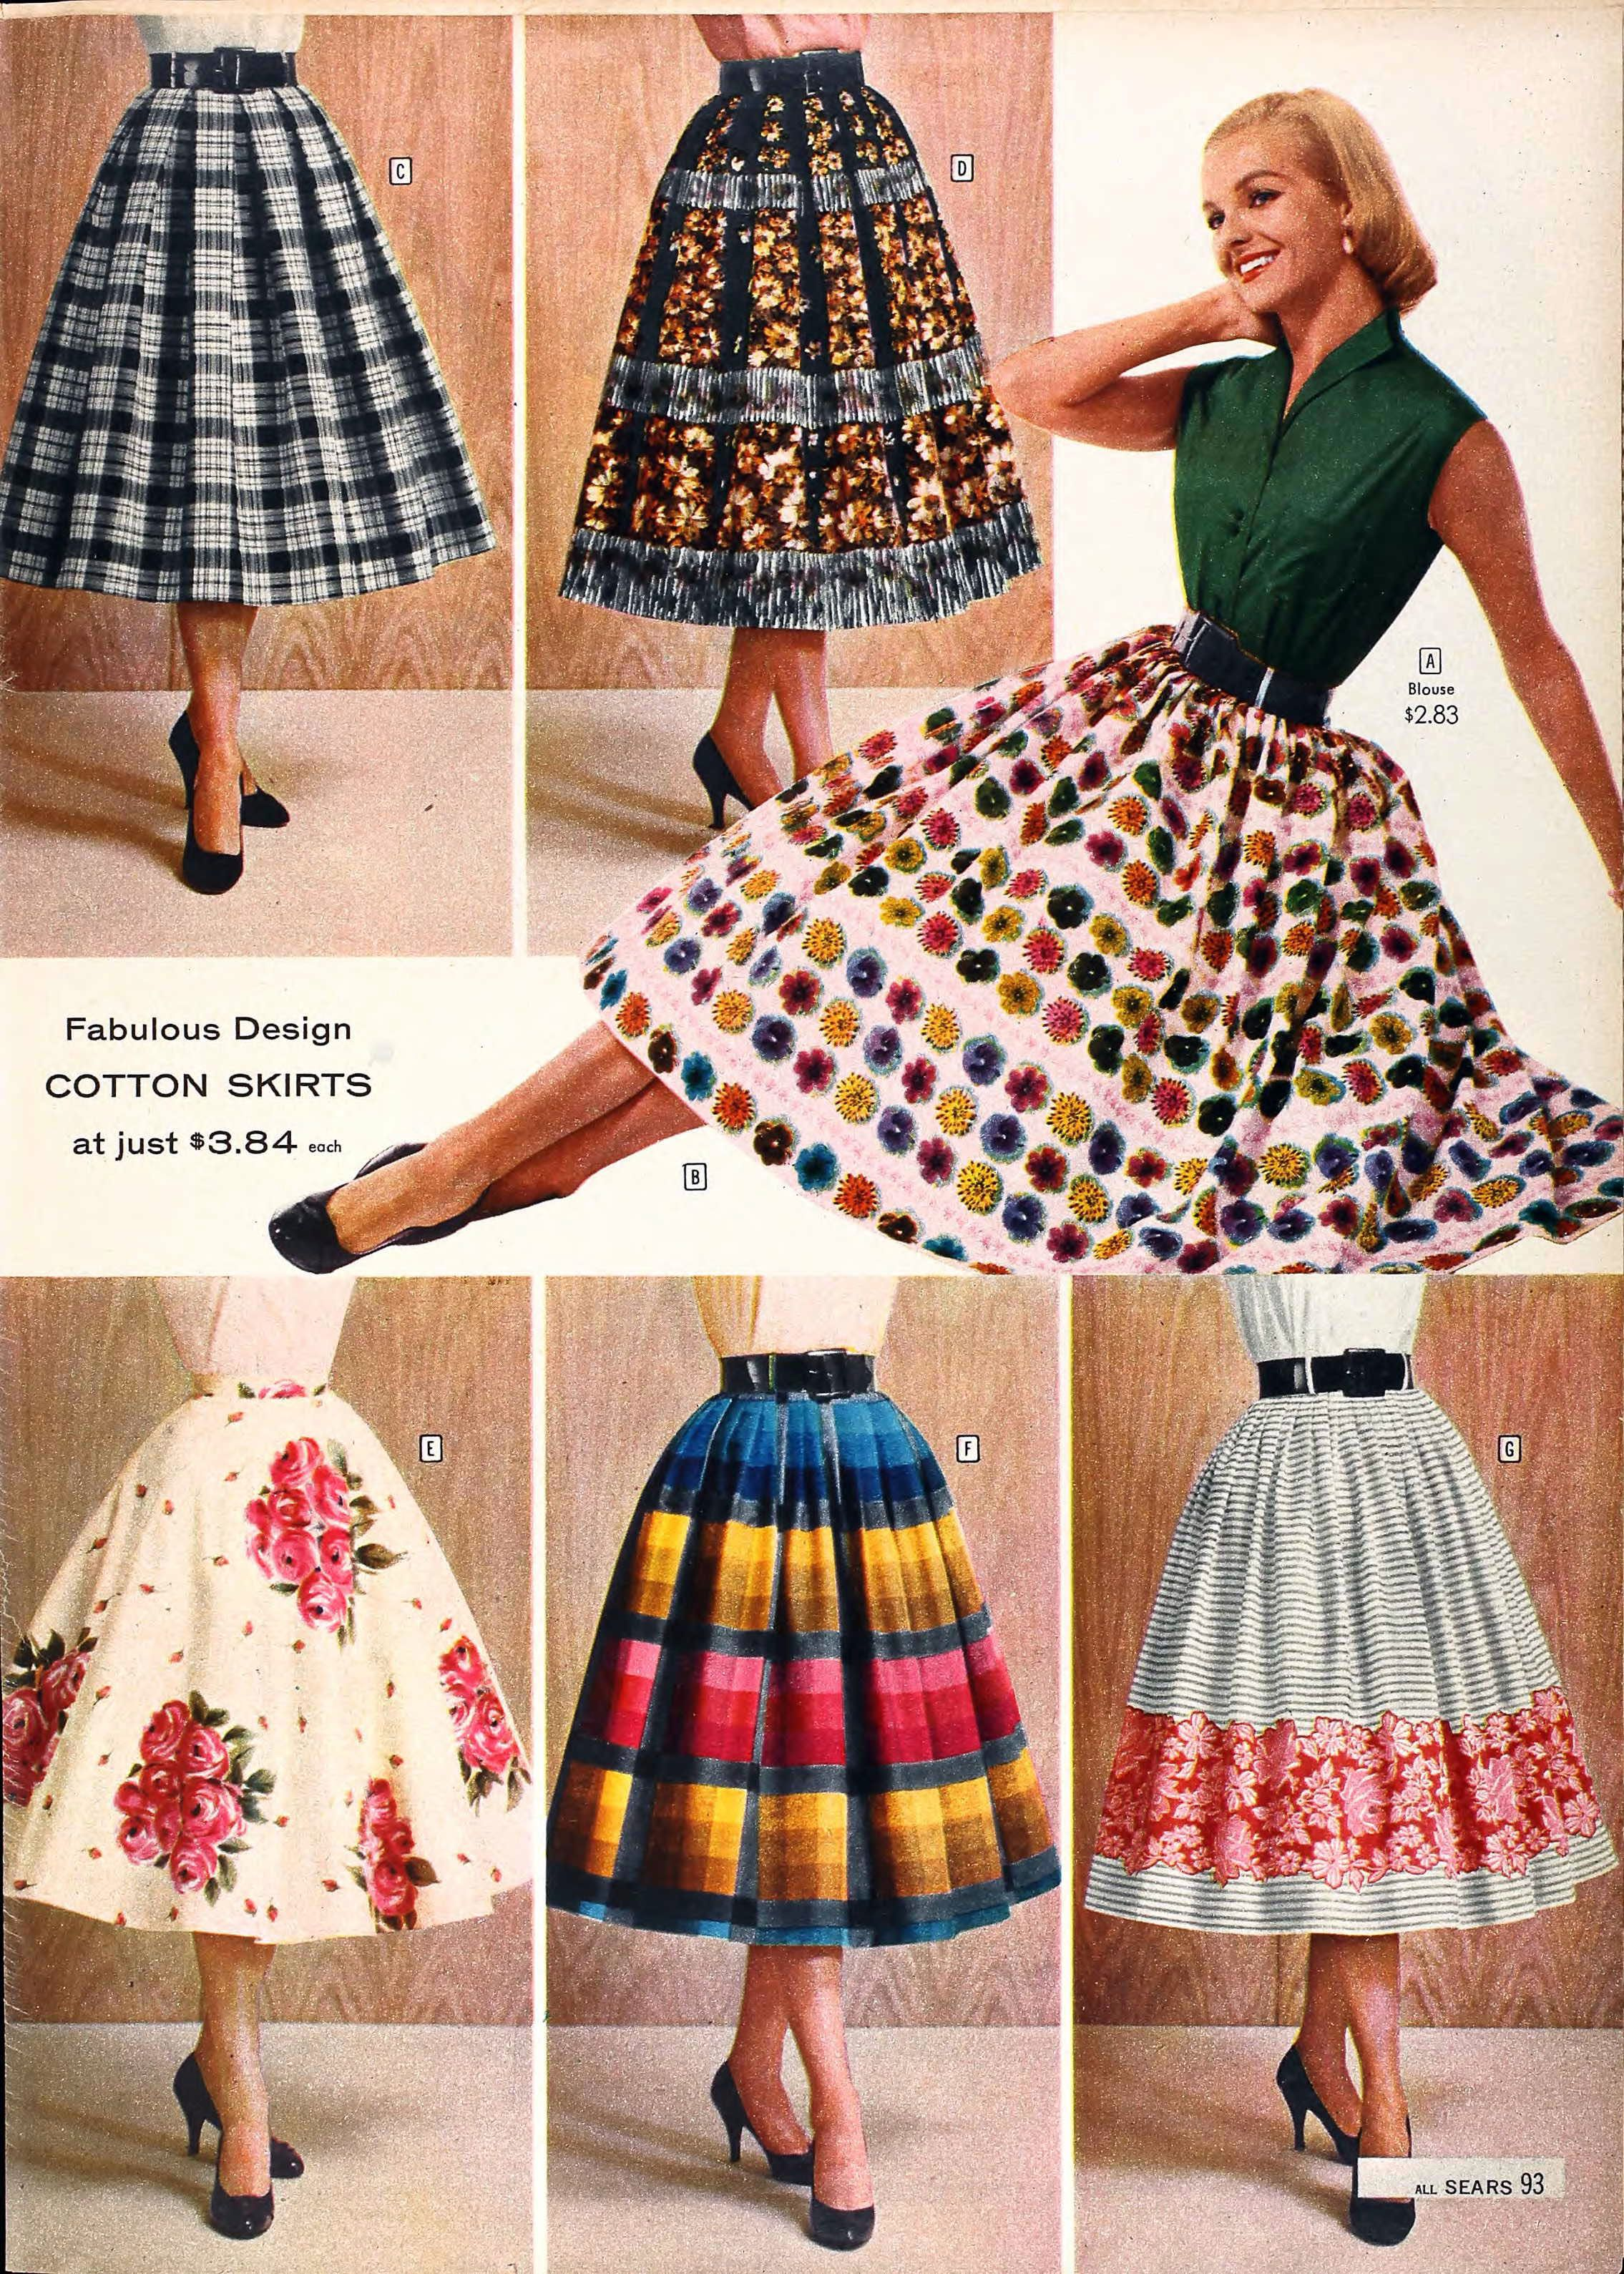 4d6ad1412 Sears Catalog, Spring/Summer 1958 - Women's Dresses - I absolutely adore  this style